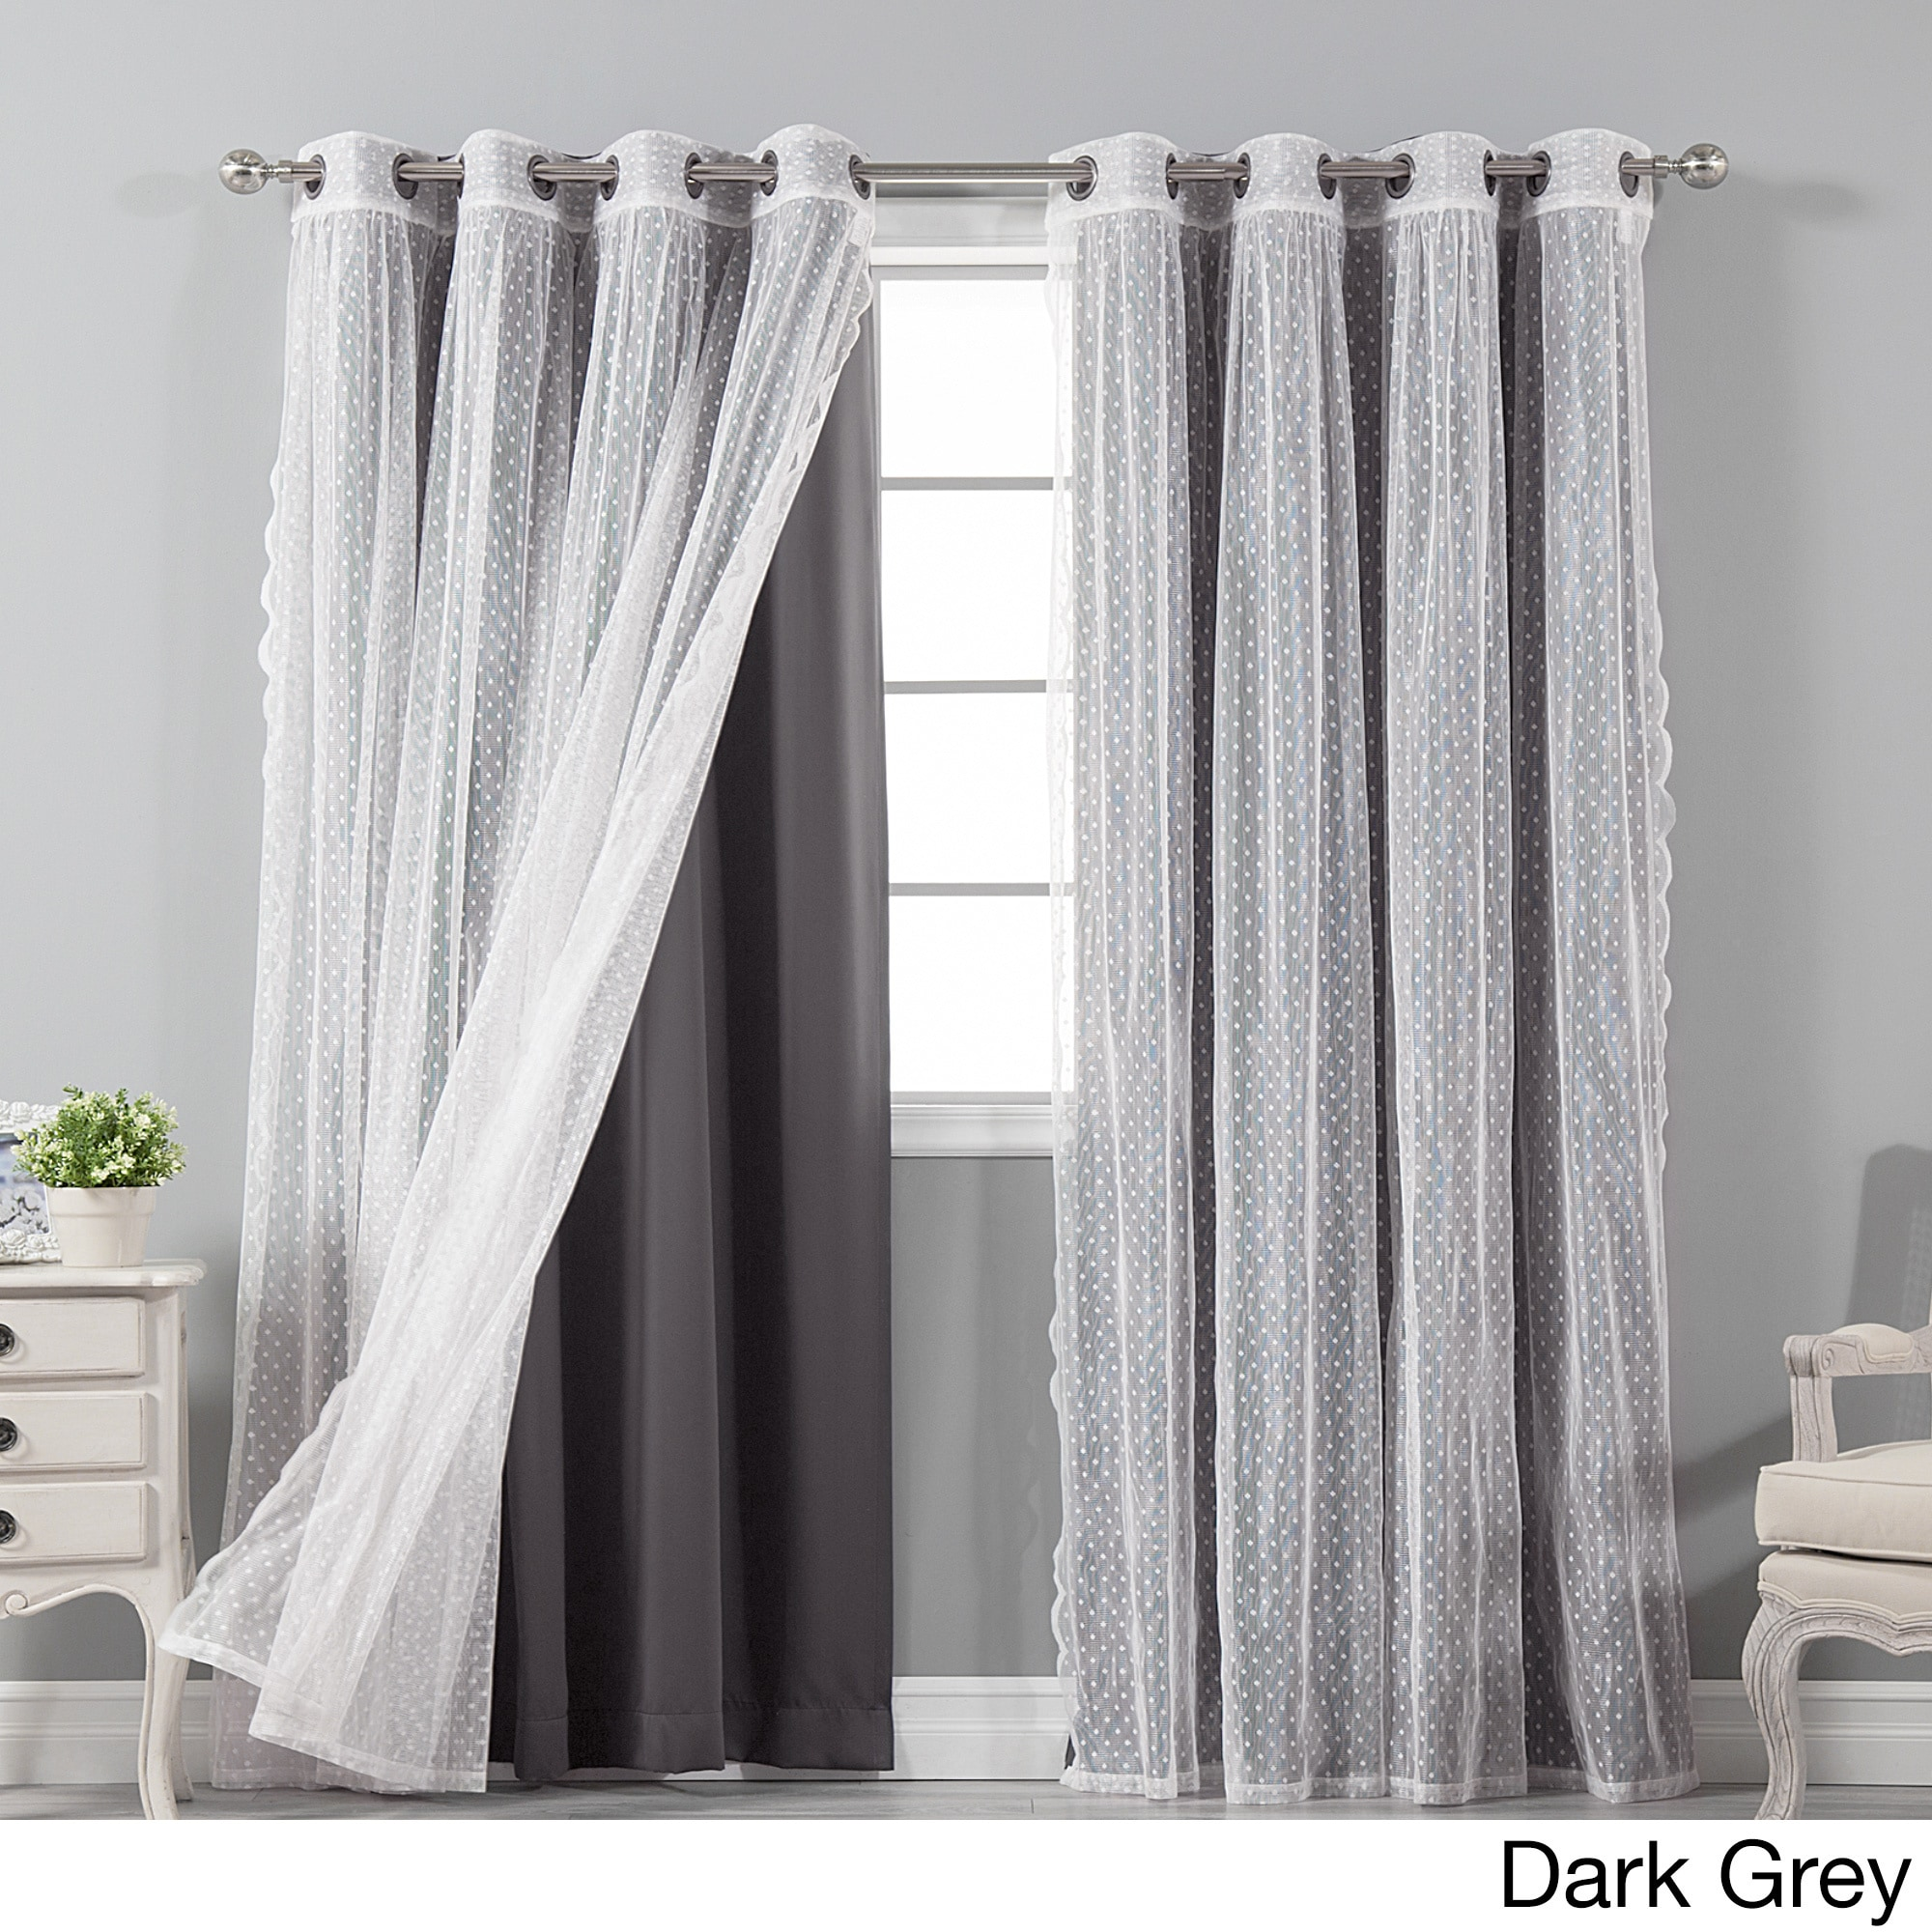 and image panels curtains grommet curtain patterns decor patterned gray affordable sheer colors white modern home of